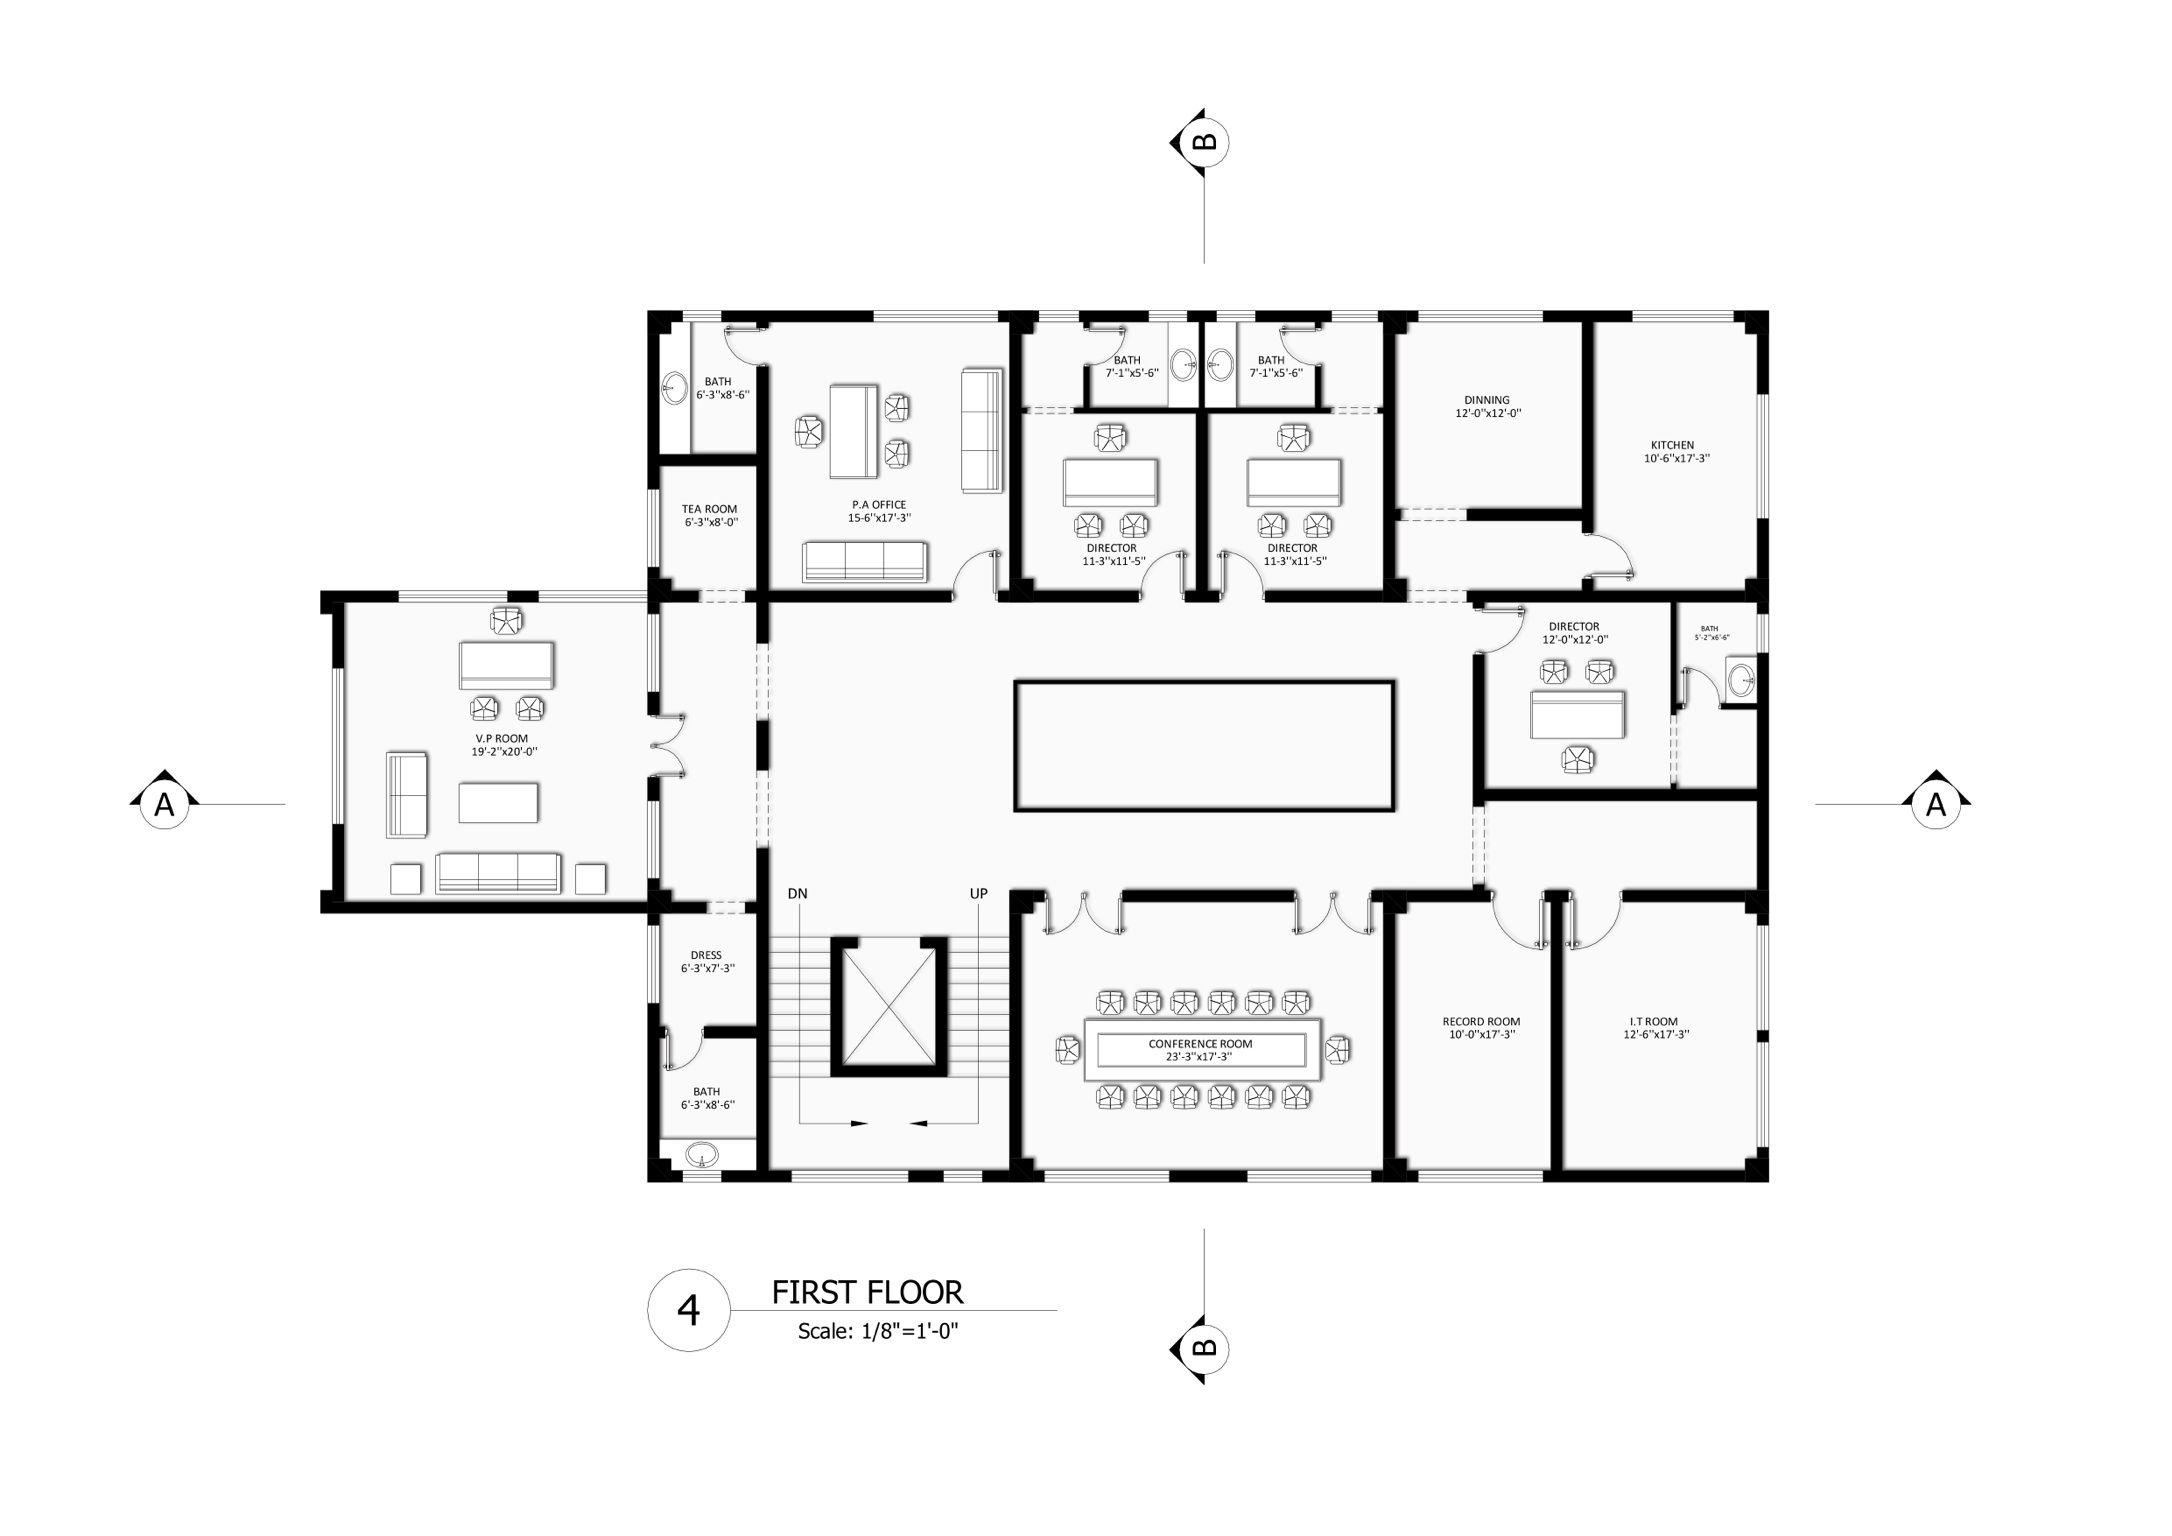 Bank Design First Floor Plan Architectural Design 2 Floor Plan Design Bank Design Office Layout Plan